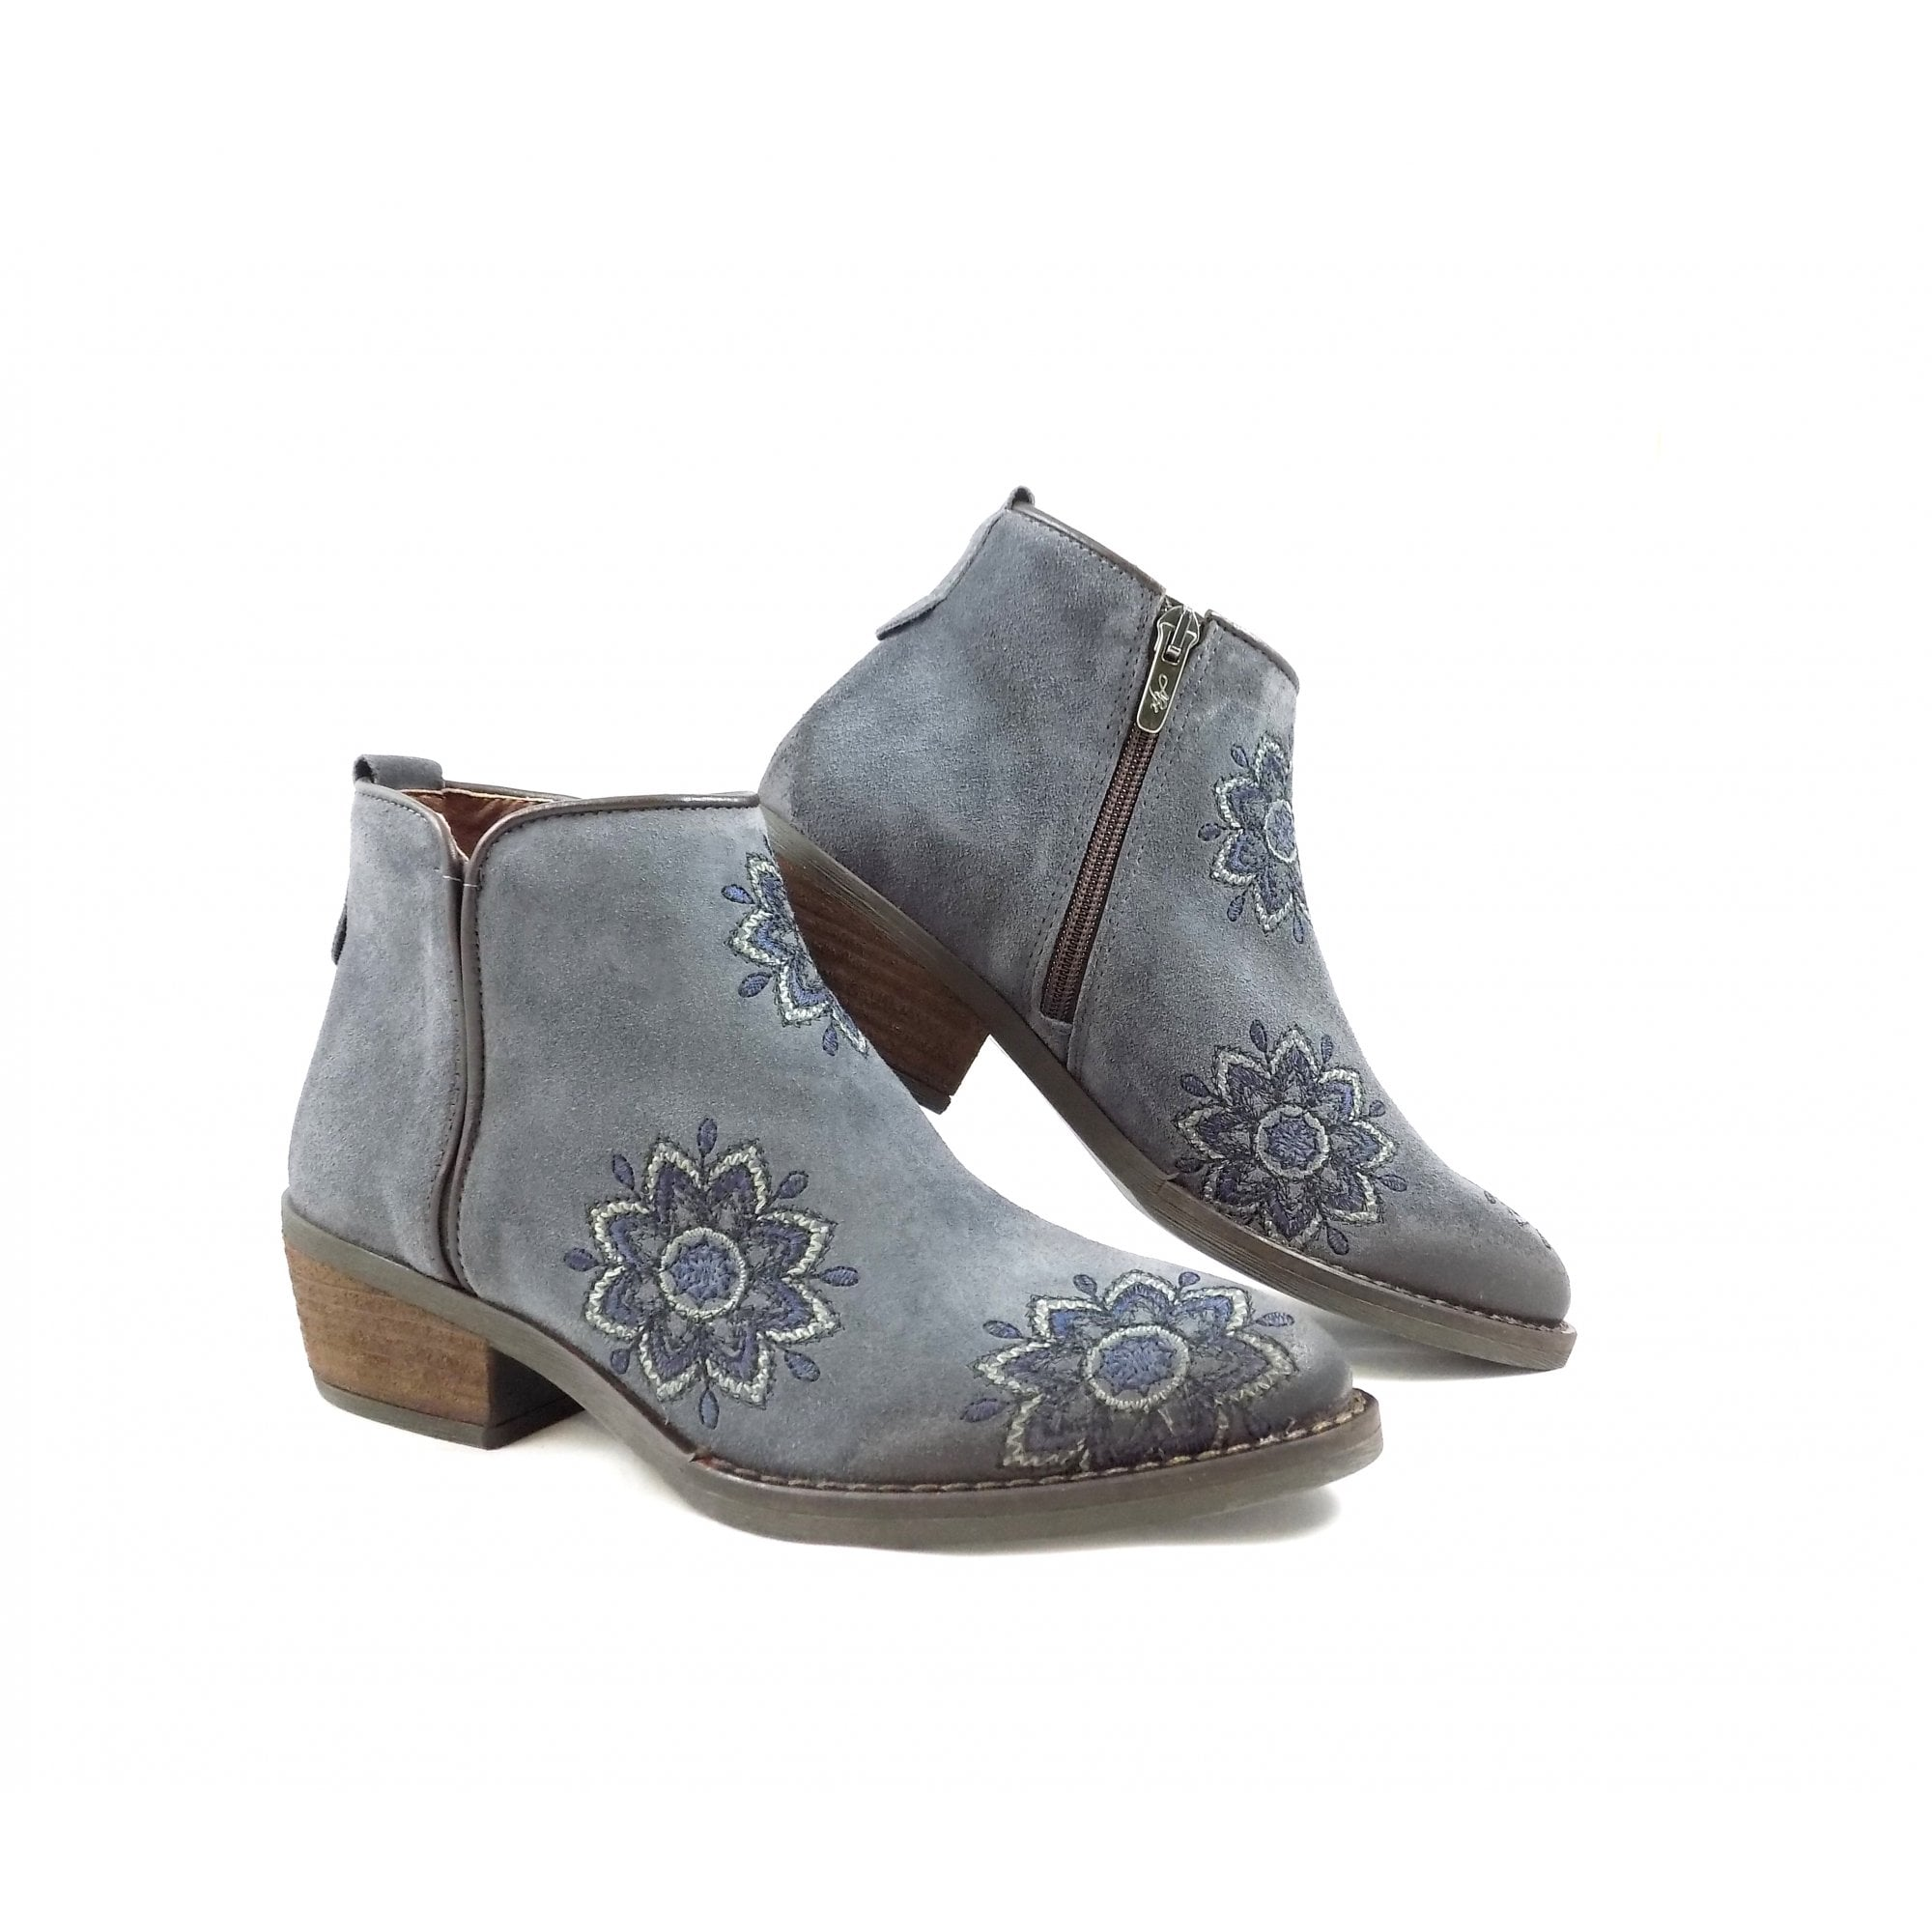 3459 Western Style Ankle Boot with Embroidery